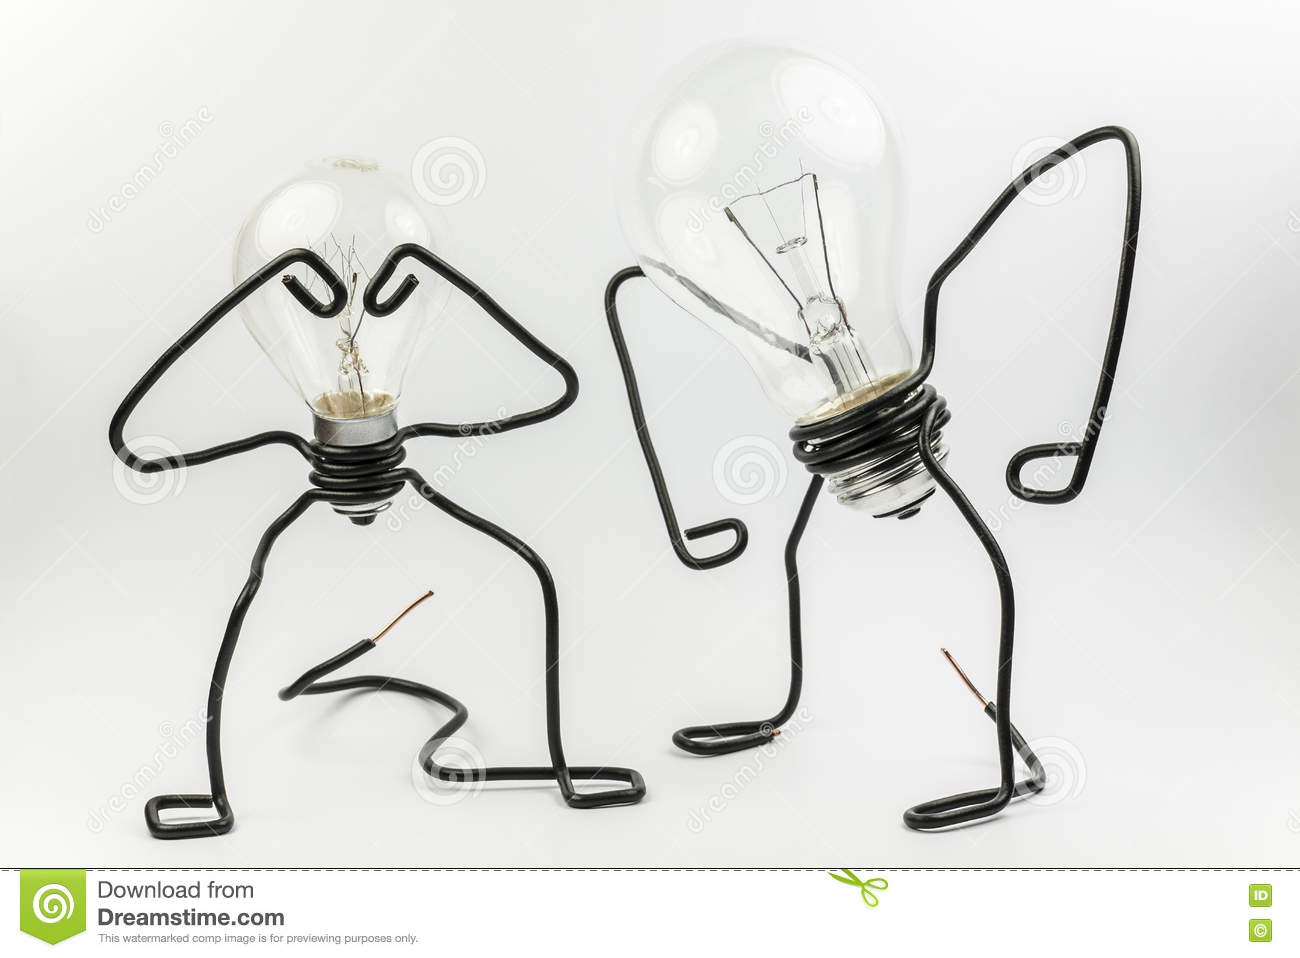 Fantasy Figures Of Light Bulbs And Wires Stock Photo Image Wiring Two In Series Emotional Transparant Black Electrical